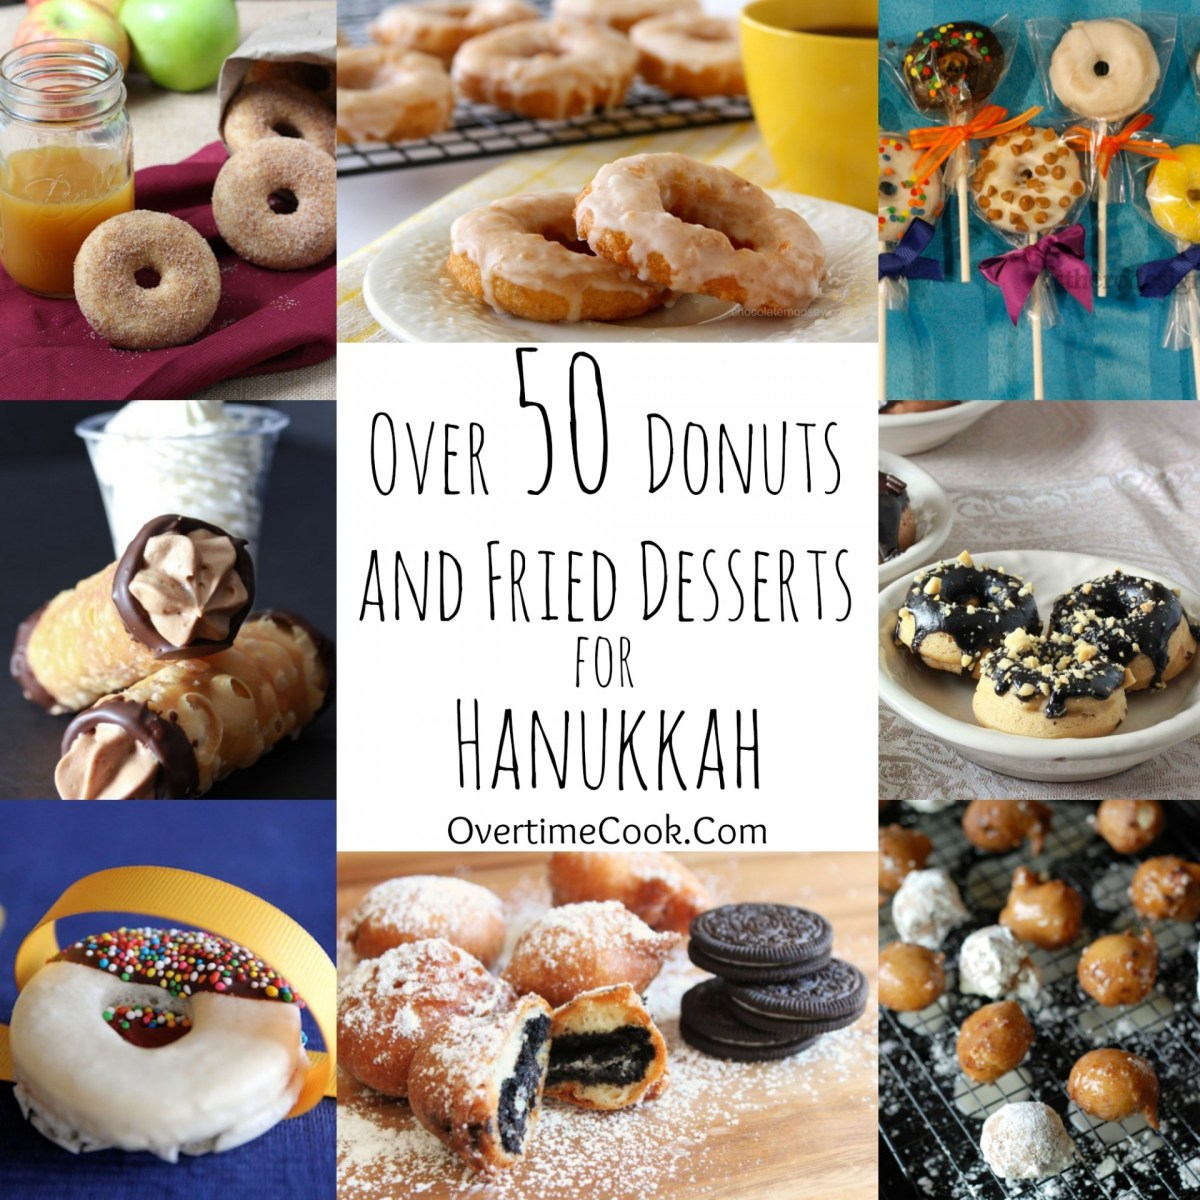 Over 50 Donuts and Fried Desserts for Hanukkah